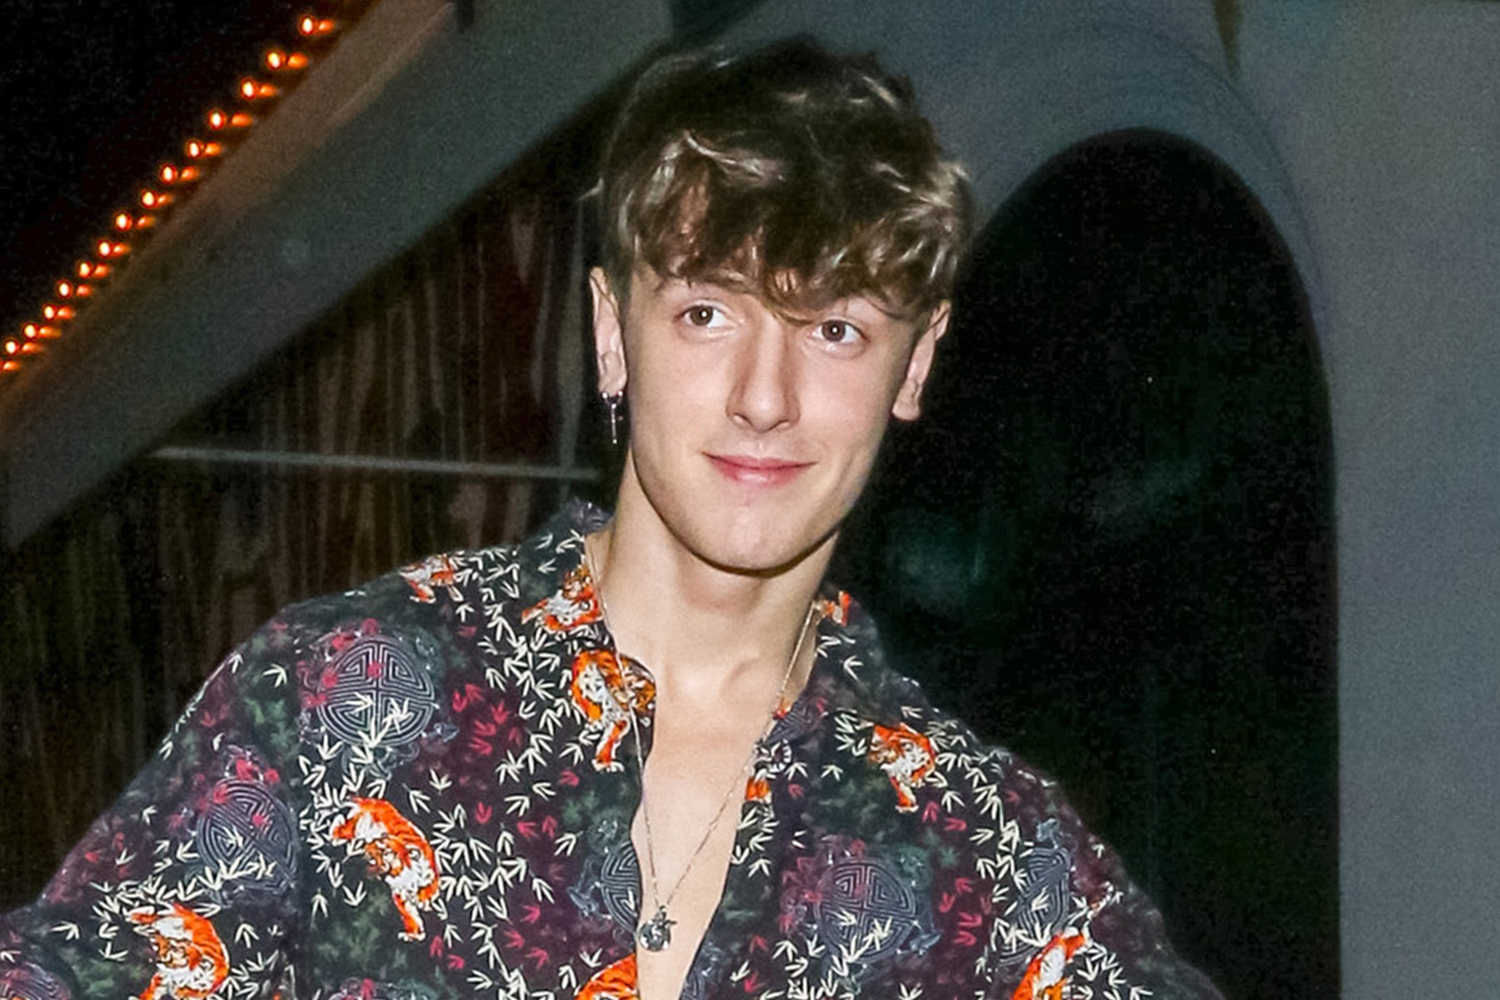 TikTok Star Bryce Hall Got His Power and Water Shut for Throwing Party